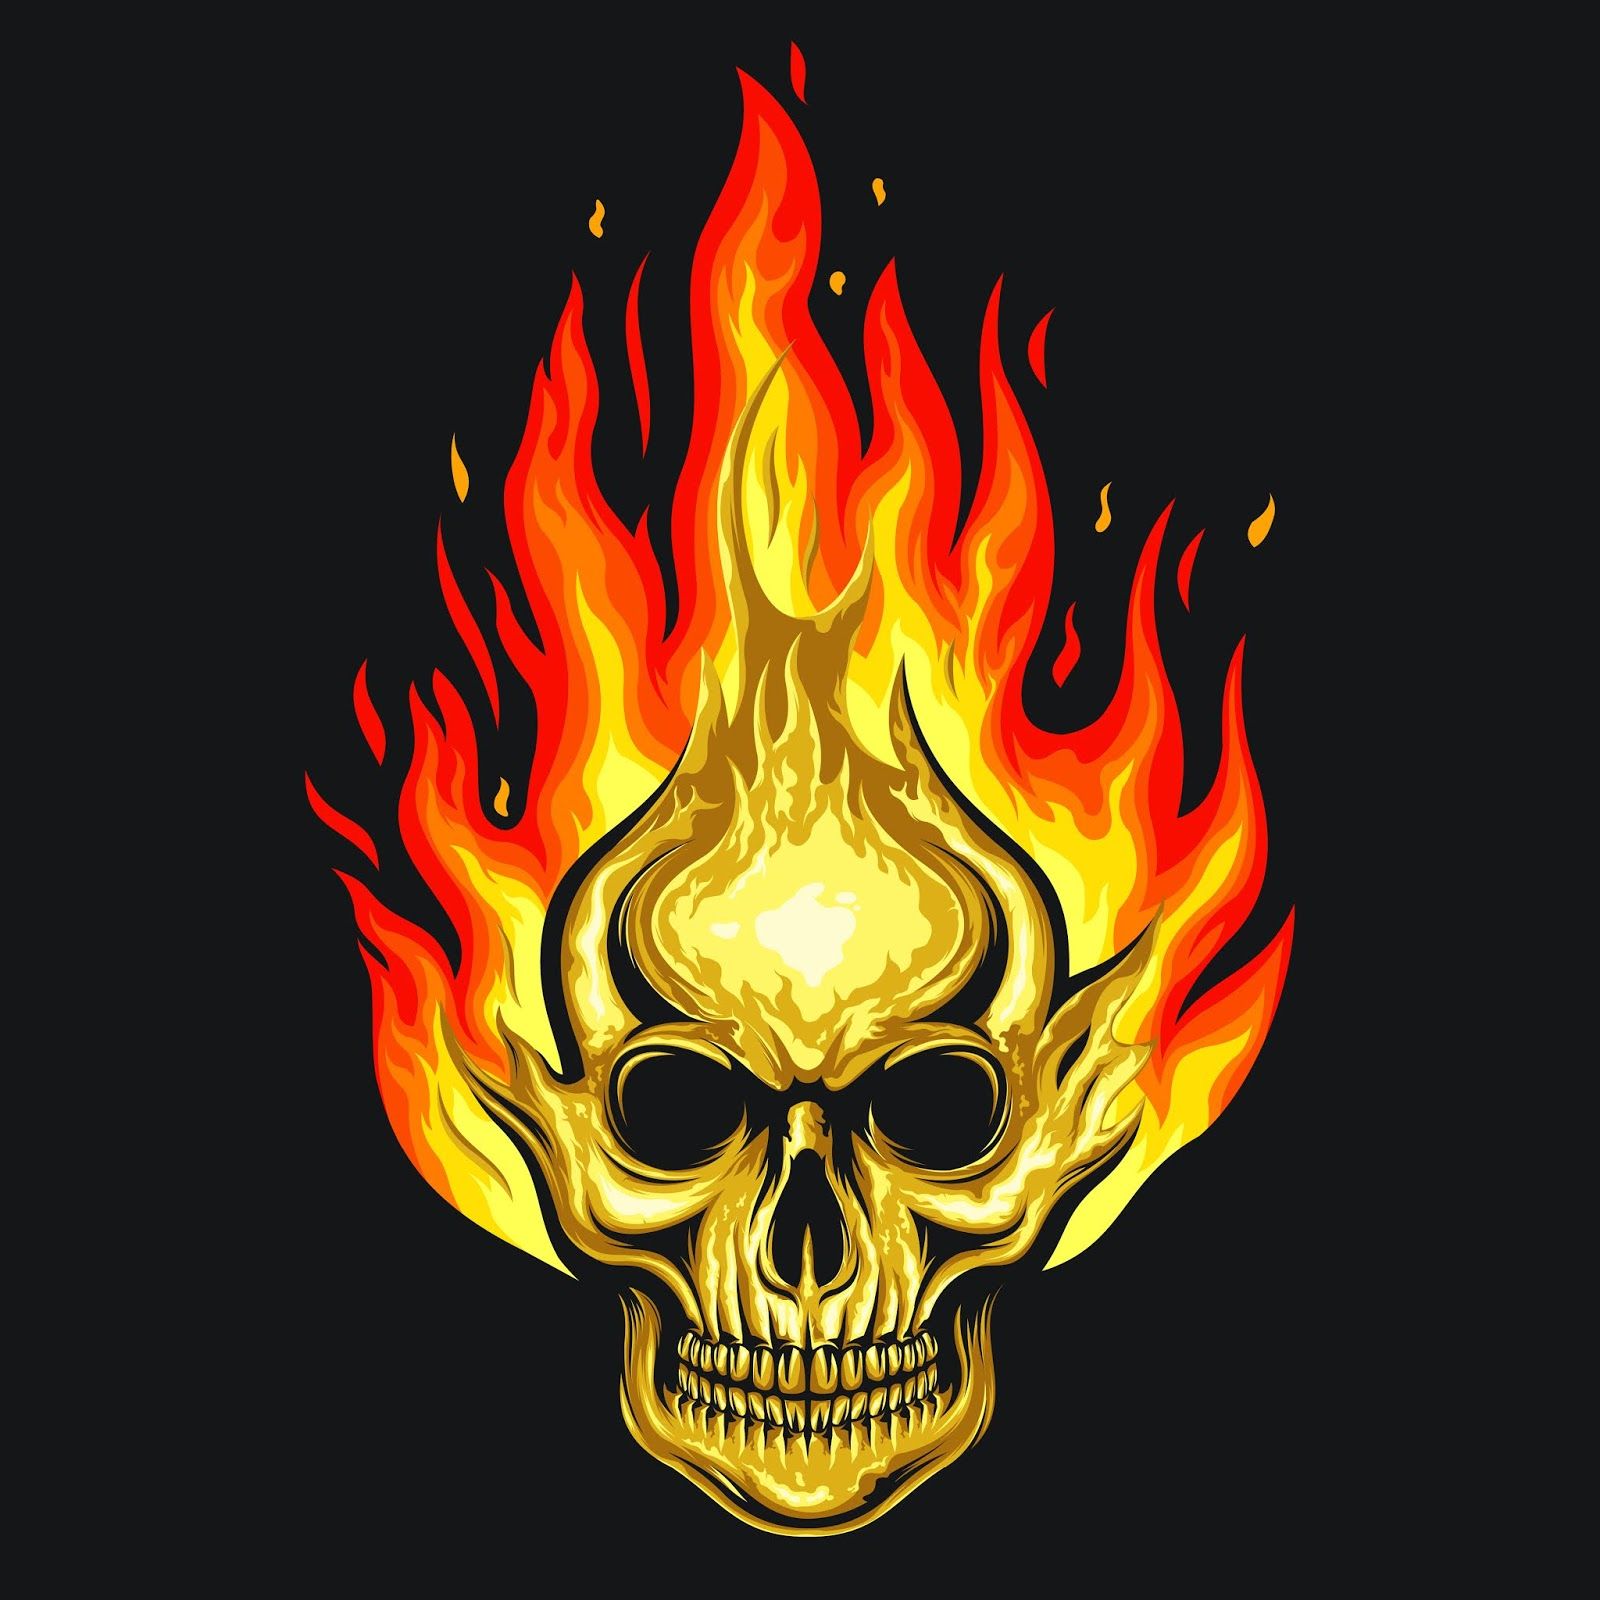 Human Skull Fire Illustration Free Download Vector CDR, AI, EPS and PNG Formats